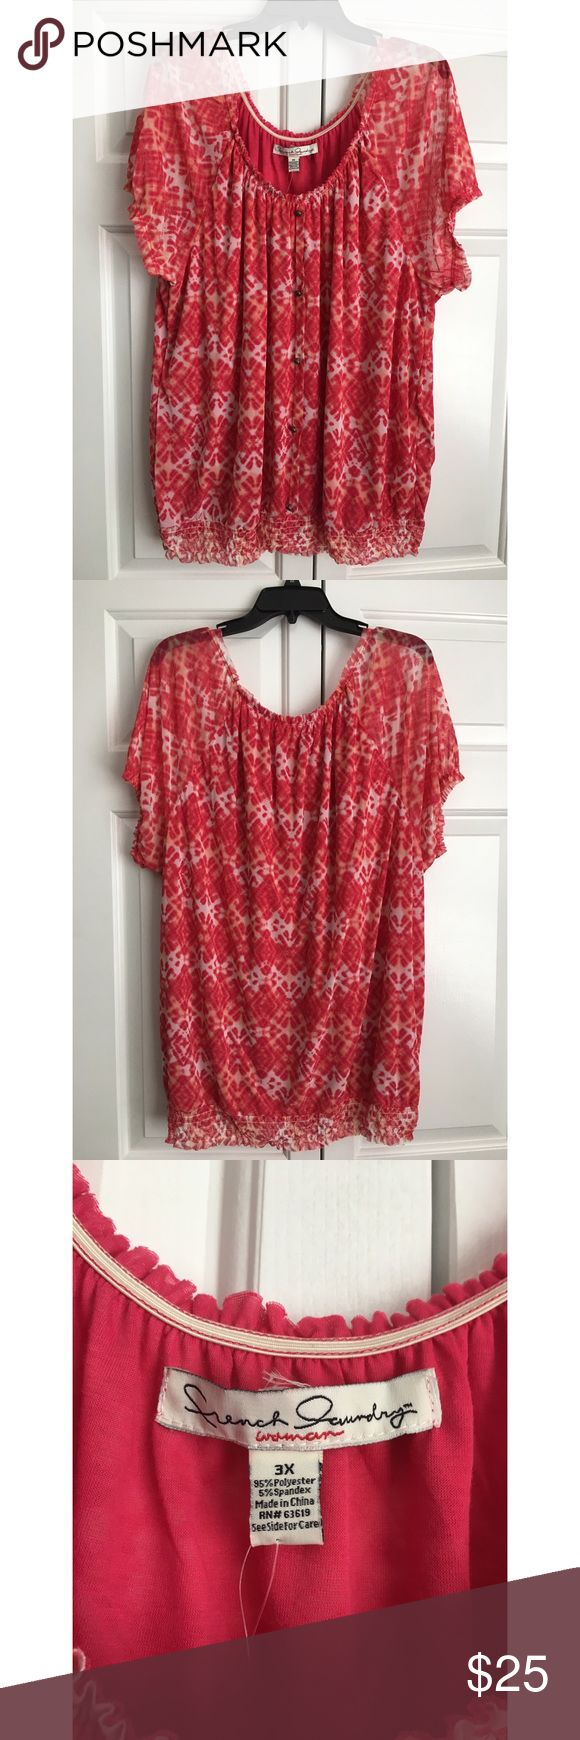 """NWT DEB Peasant Short Sleeve Blouse// Size 3X Brand new with tags, French Laundry brand from Deb Shop! Buttons are non-functional and the body is lined, but not the sleeves. Comes from my pet and smoke free home! Pit to pit measures 24"""" flat and total length is 30"""". No trades. Item location: bin 2. Deb Tops Blouses"""